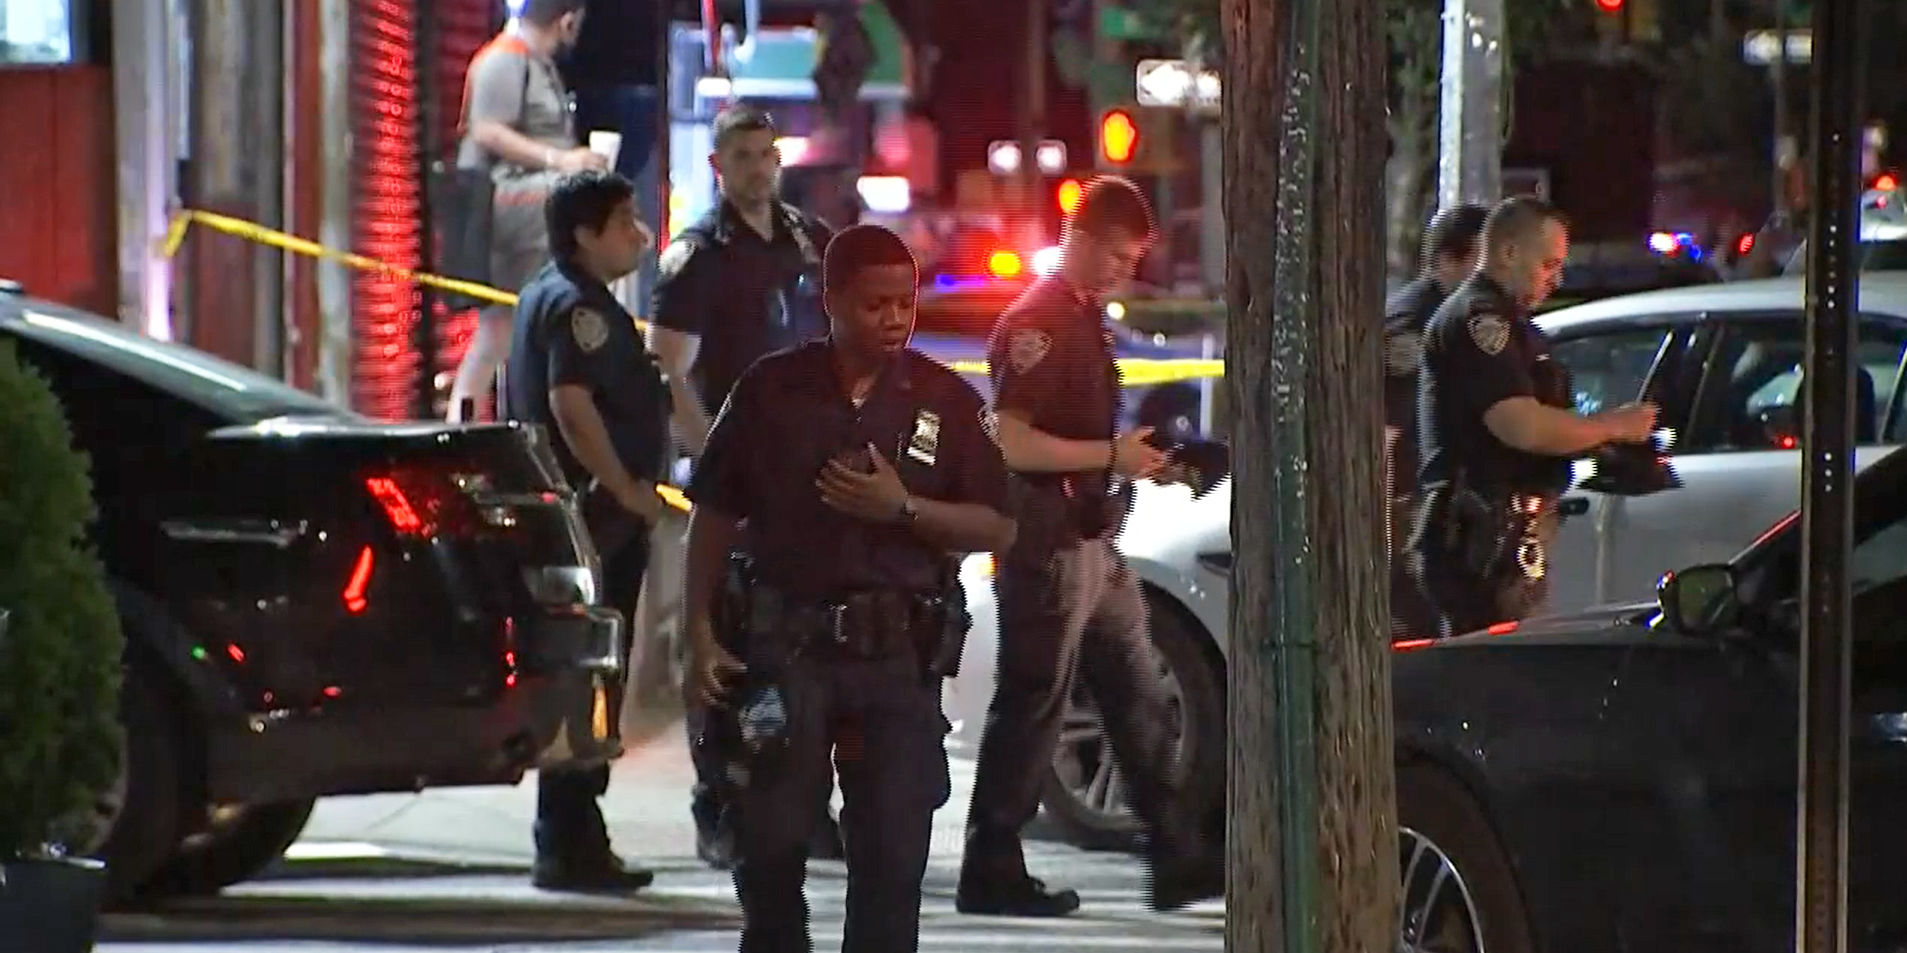 10 people shot in alleged gang attack in New York City, police say